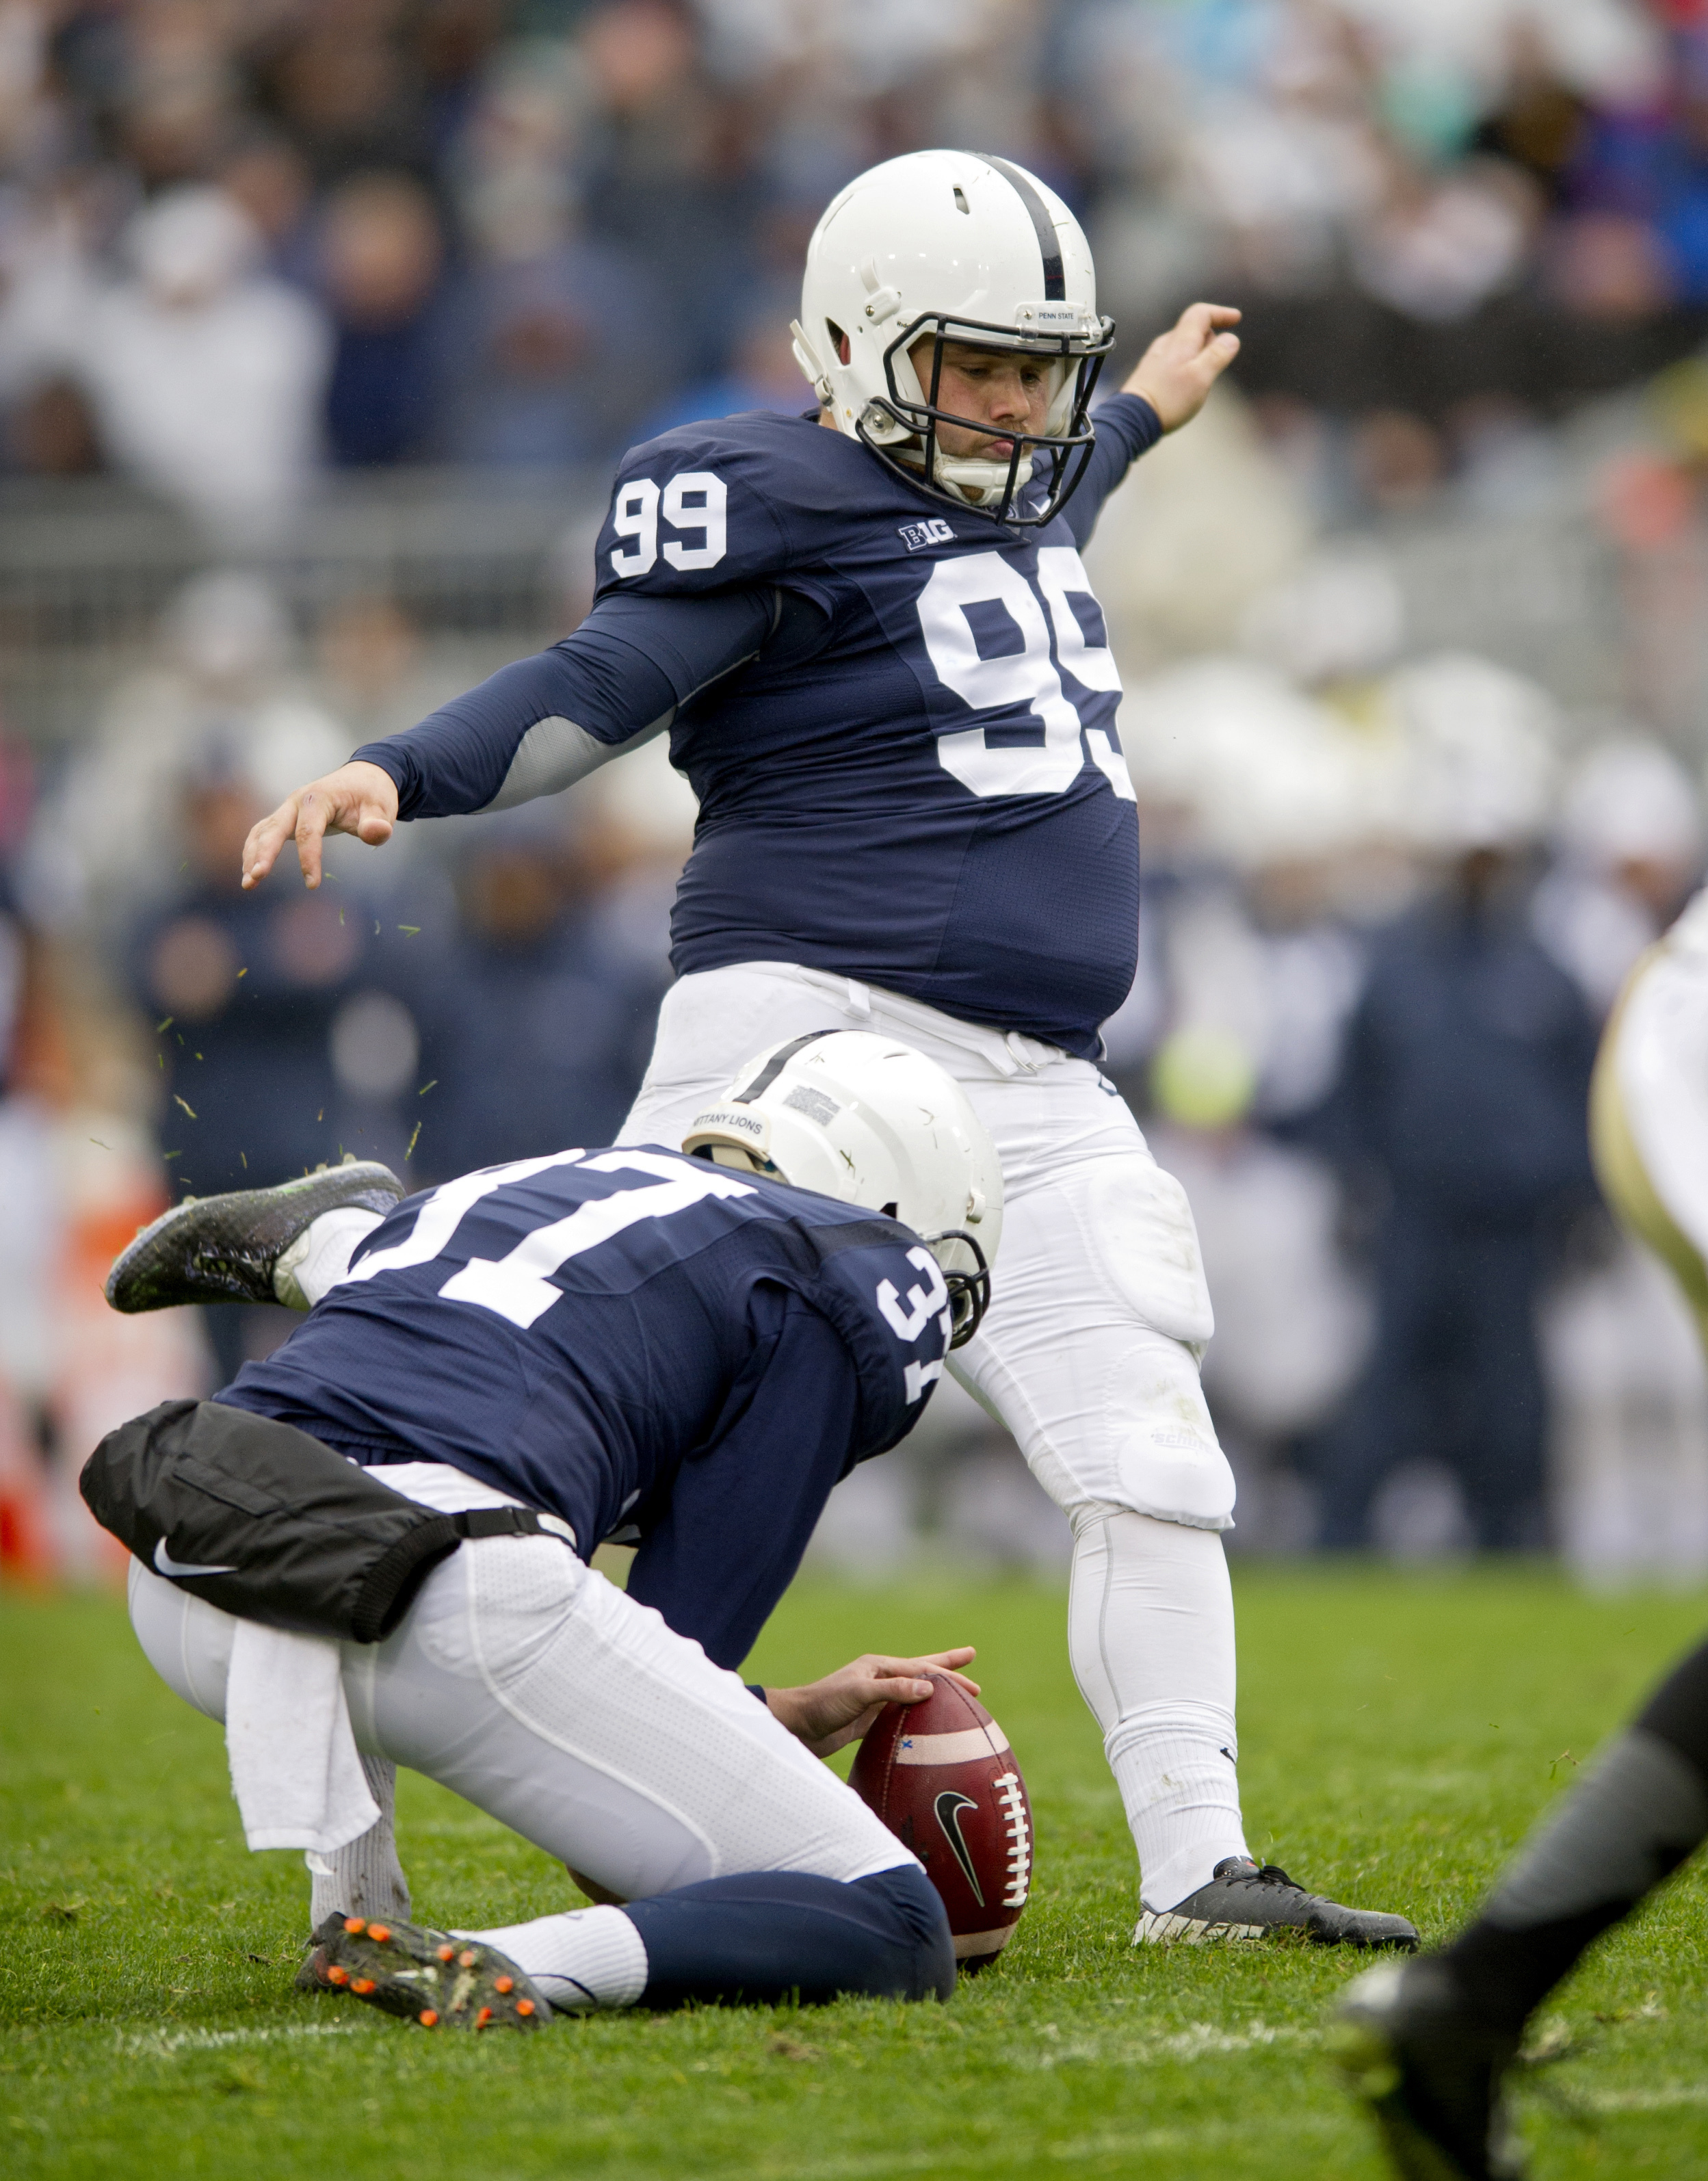 FILE - In this Oct. 3, 2015, file photo, Penn State's Joey Julius kicks a field goal during an NCAA college football game against Army in State College, Pa. Joey Julius, the 258-pound redshirt sophomore,  disclosed in a Facebook post on Sunday, Oct. 2, 20